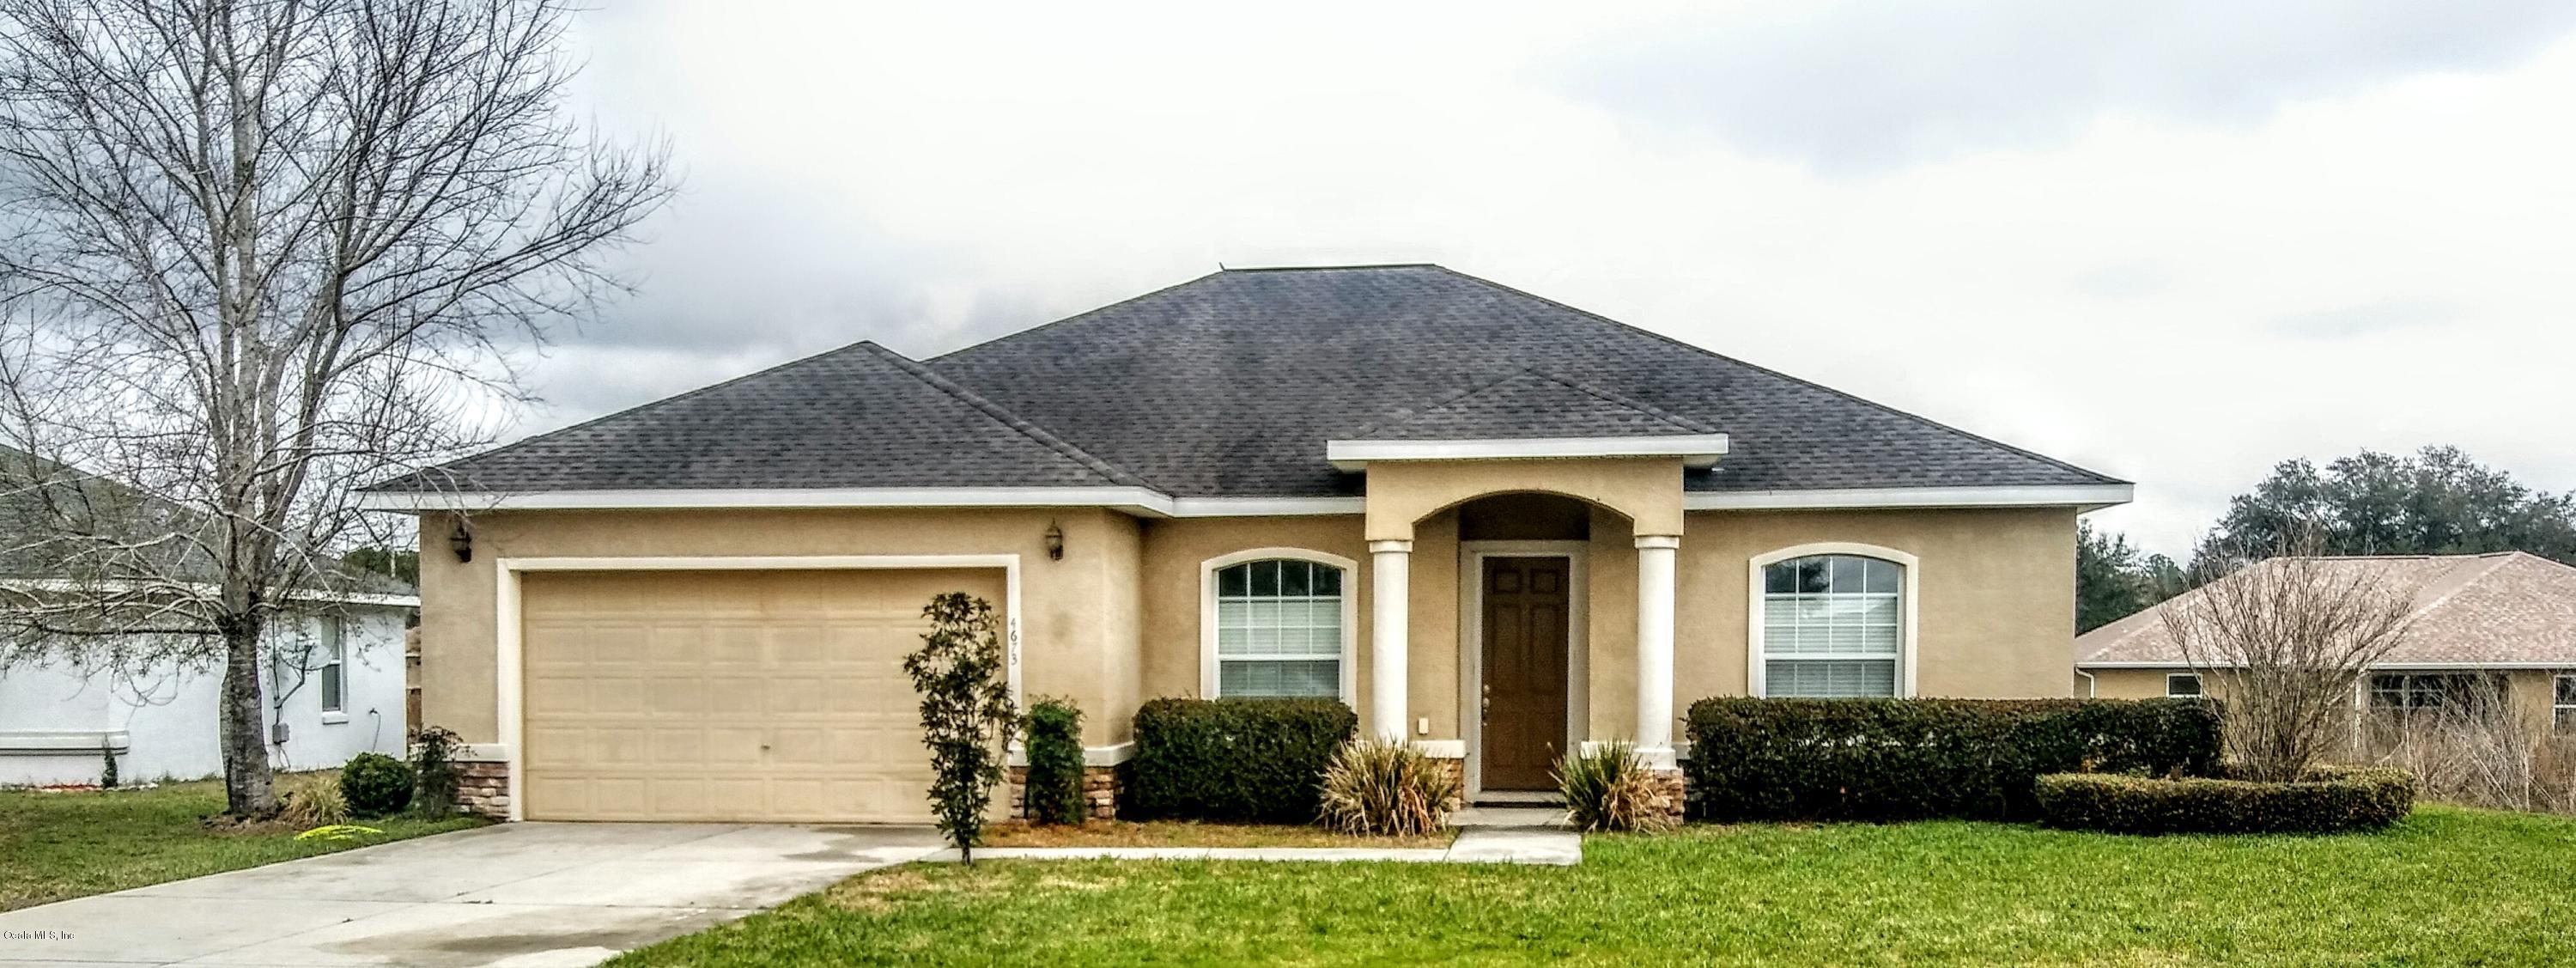 4673 SW 129TH PLACE, OCALA, FL 34473